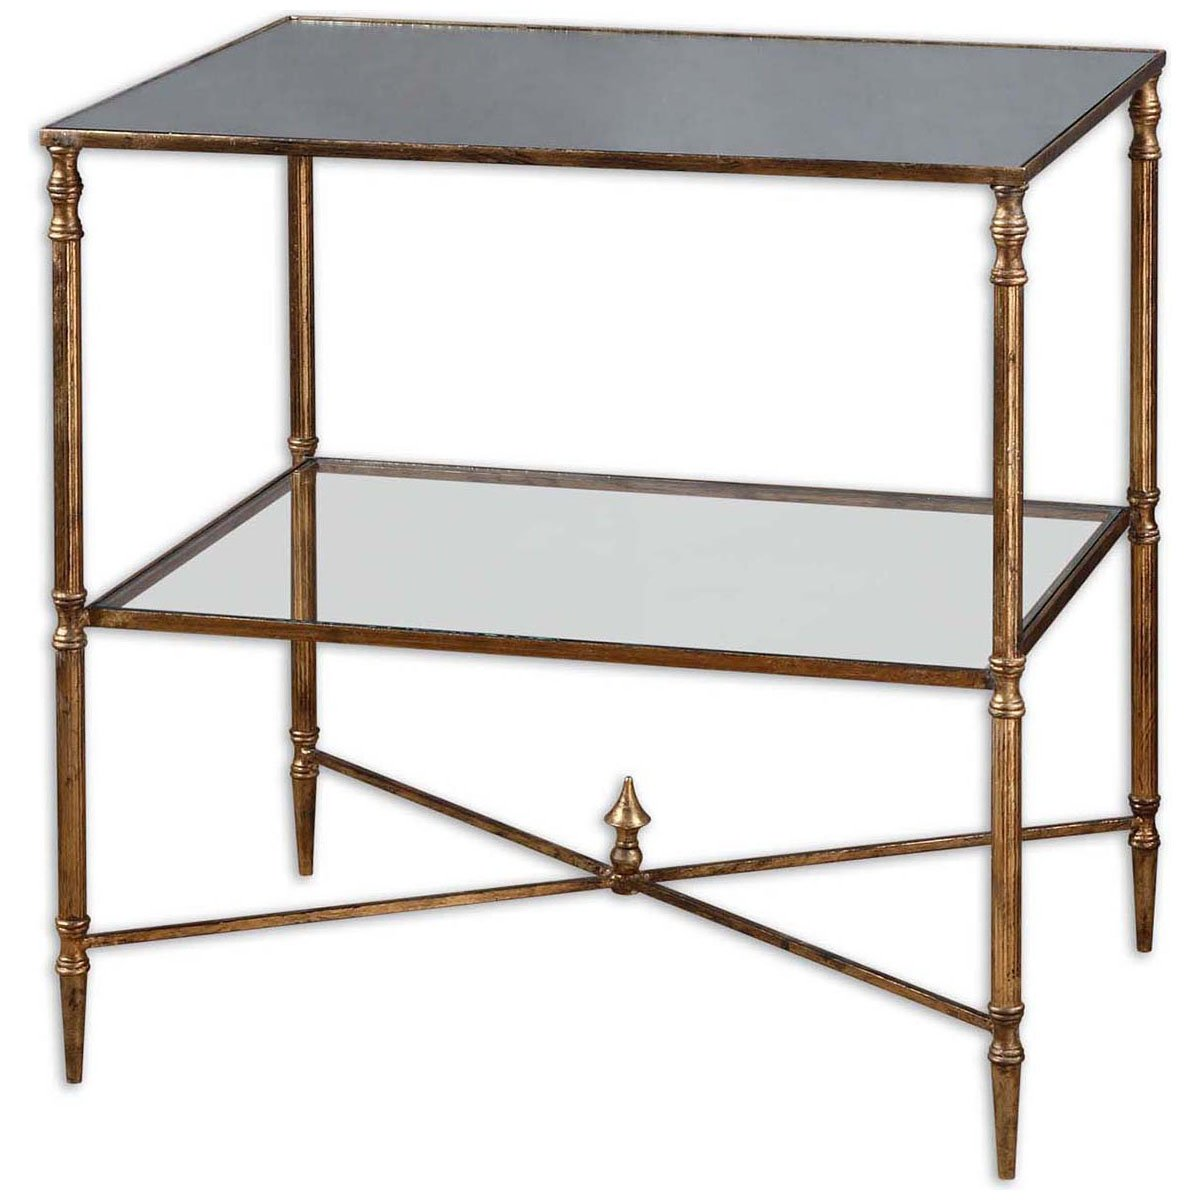 Attractive Amazon.com: Uttermost 26120 Henzler Mirrored Glass Lamp Table: Kitchen U0026  Dining